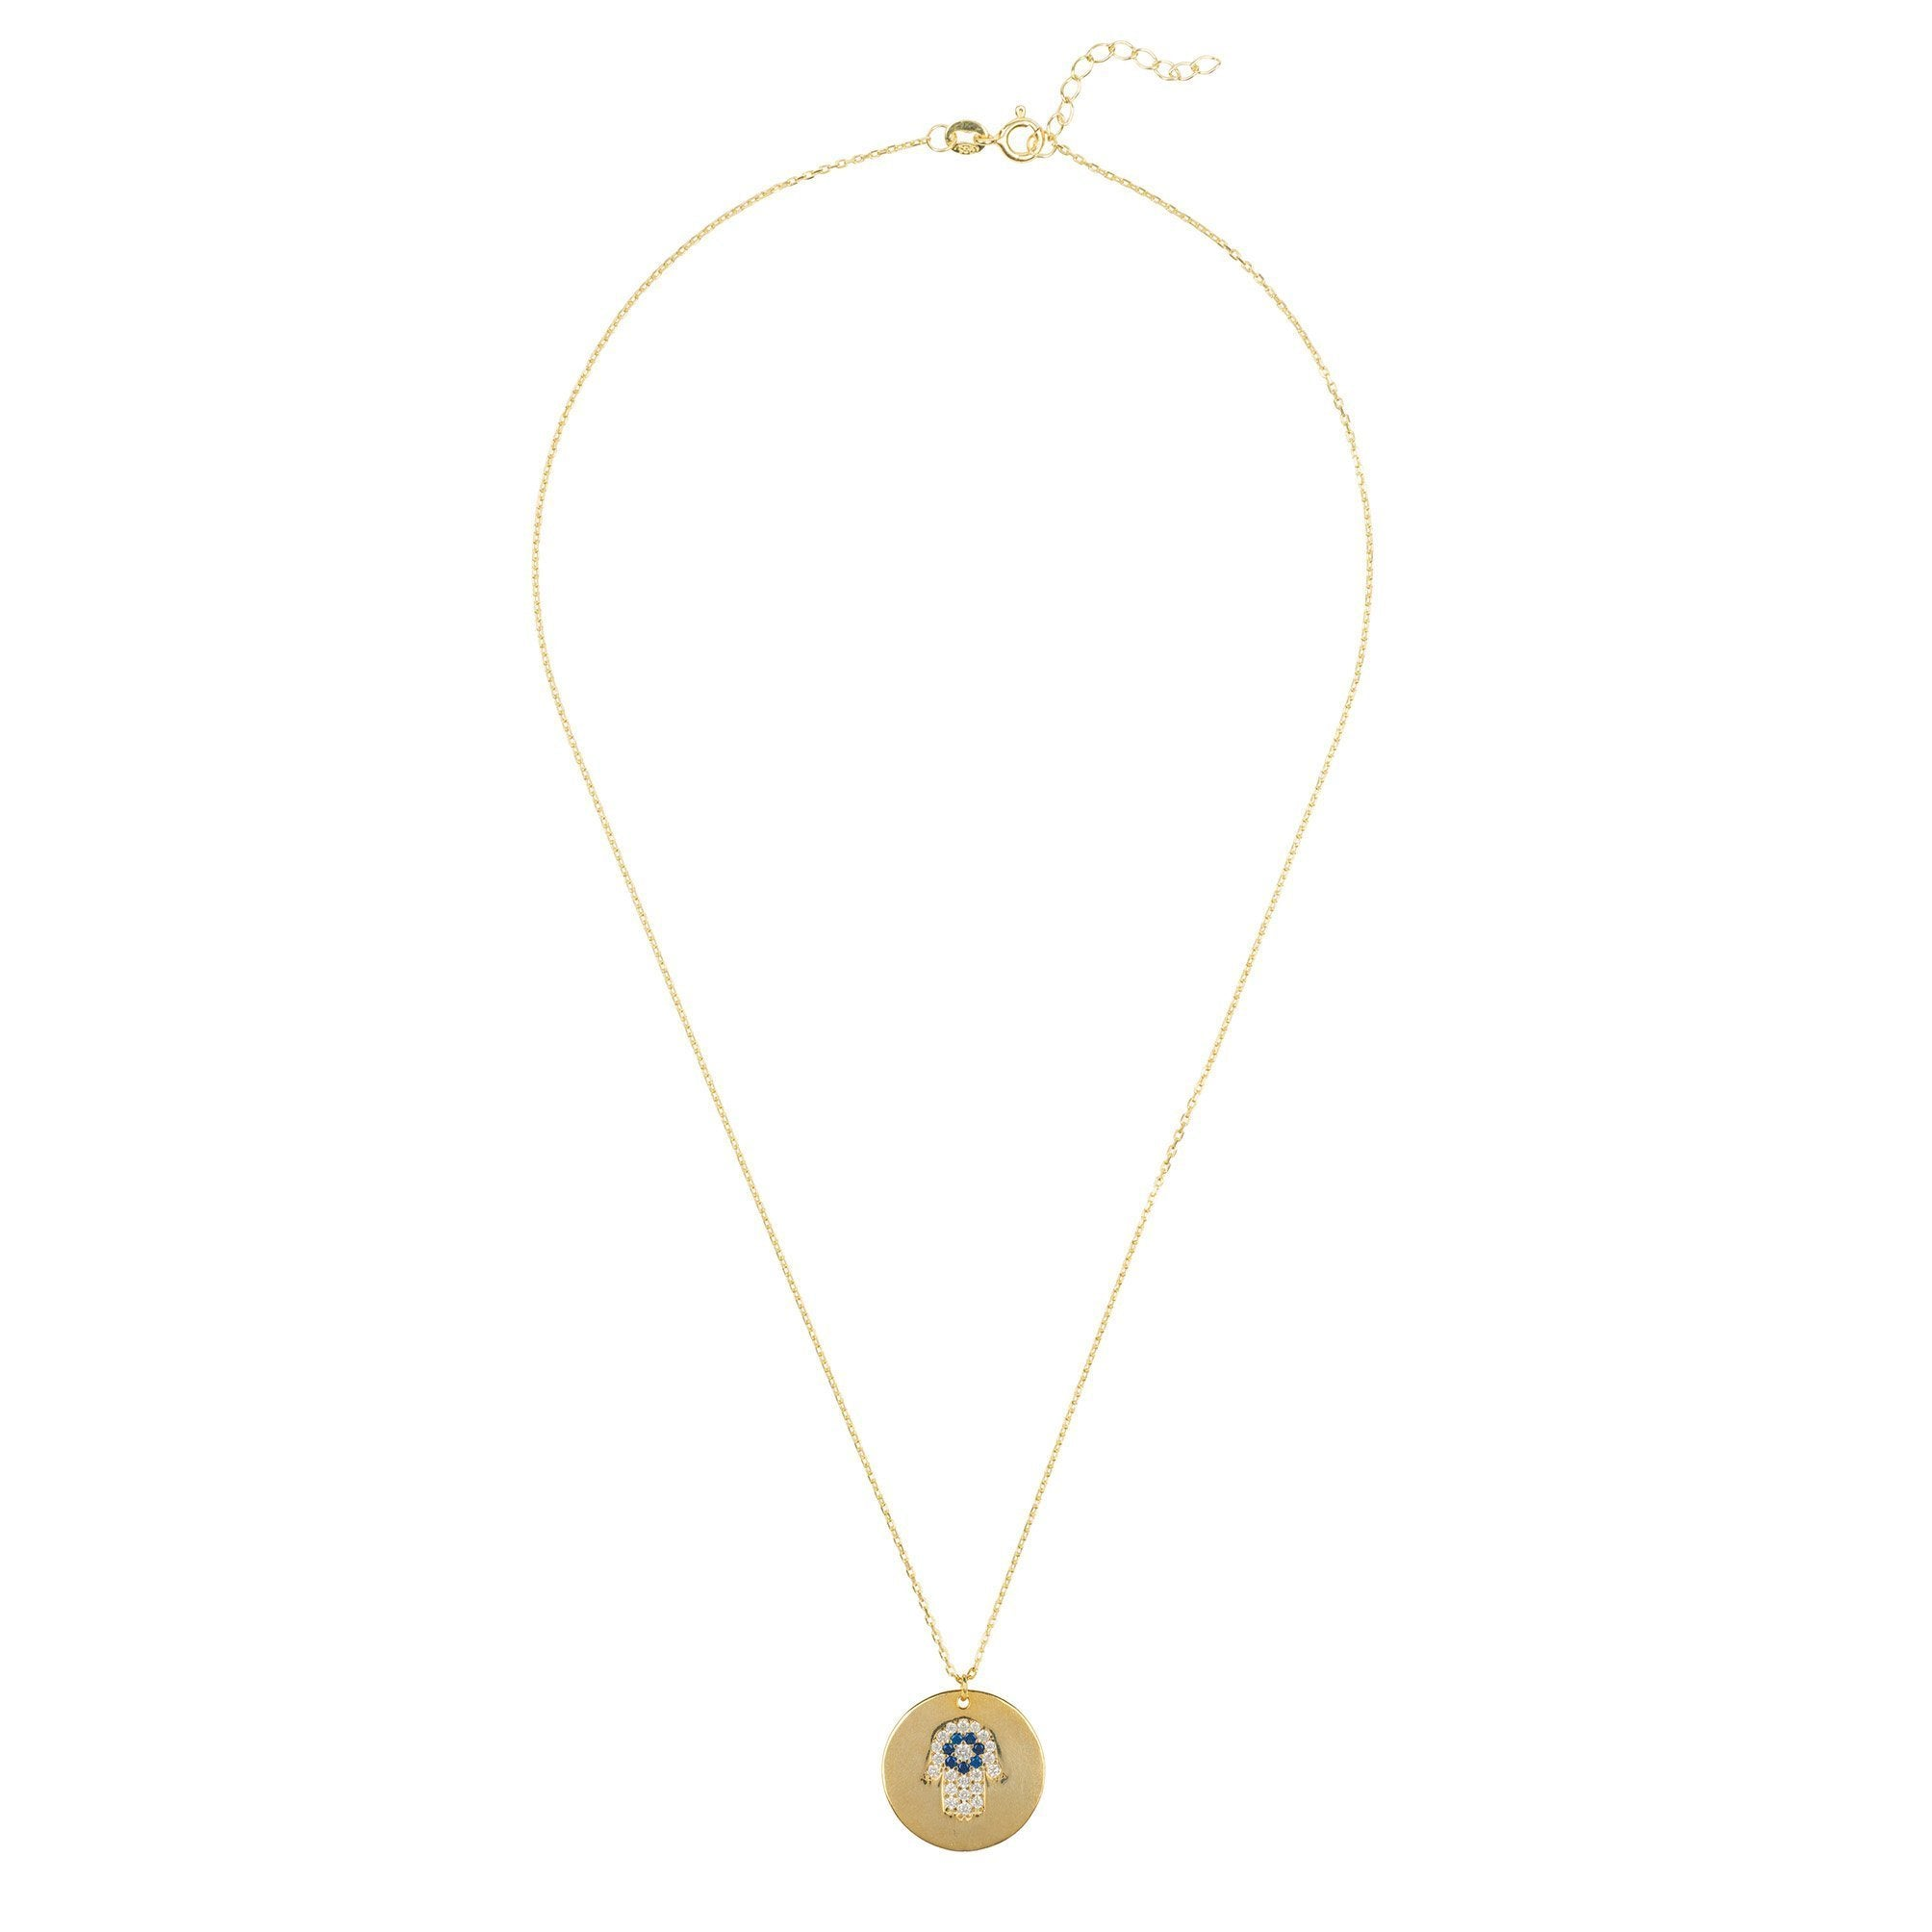 Premium Fatima Disc Necklace 22ct Gold Sterling Silver - Studio Cosmica